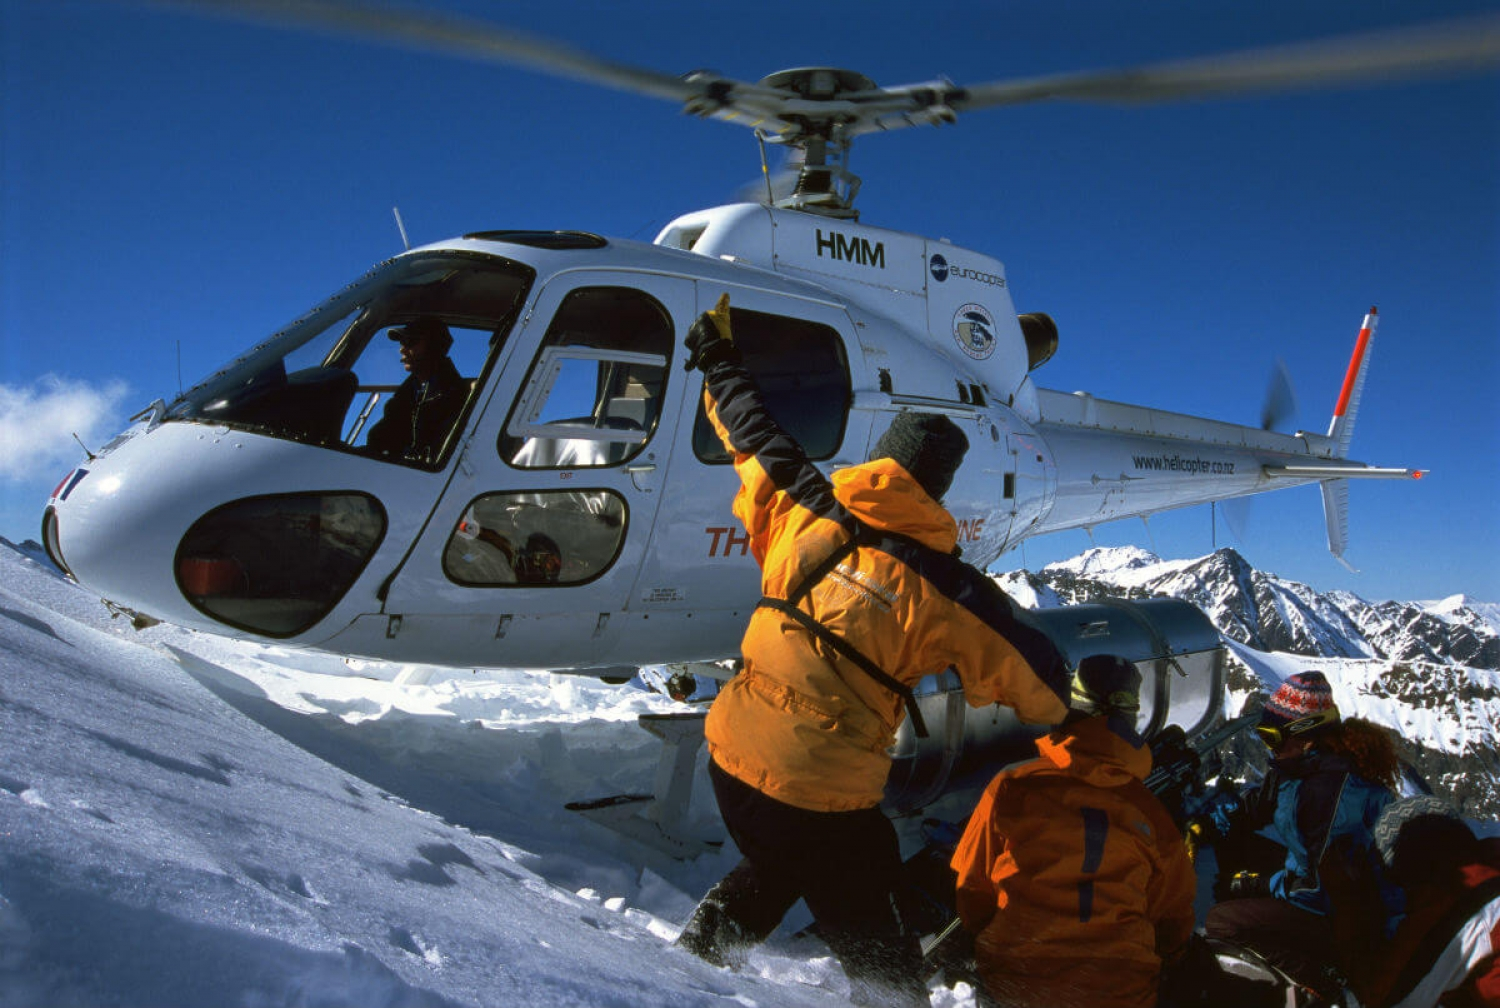 Harris Mountains Heli ski Blog How to Become a Heli skiing Guide Guide Thumbs Up